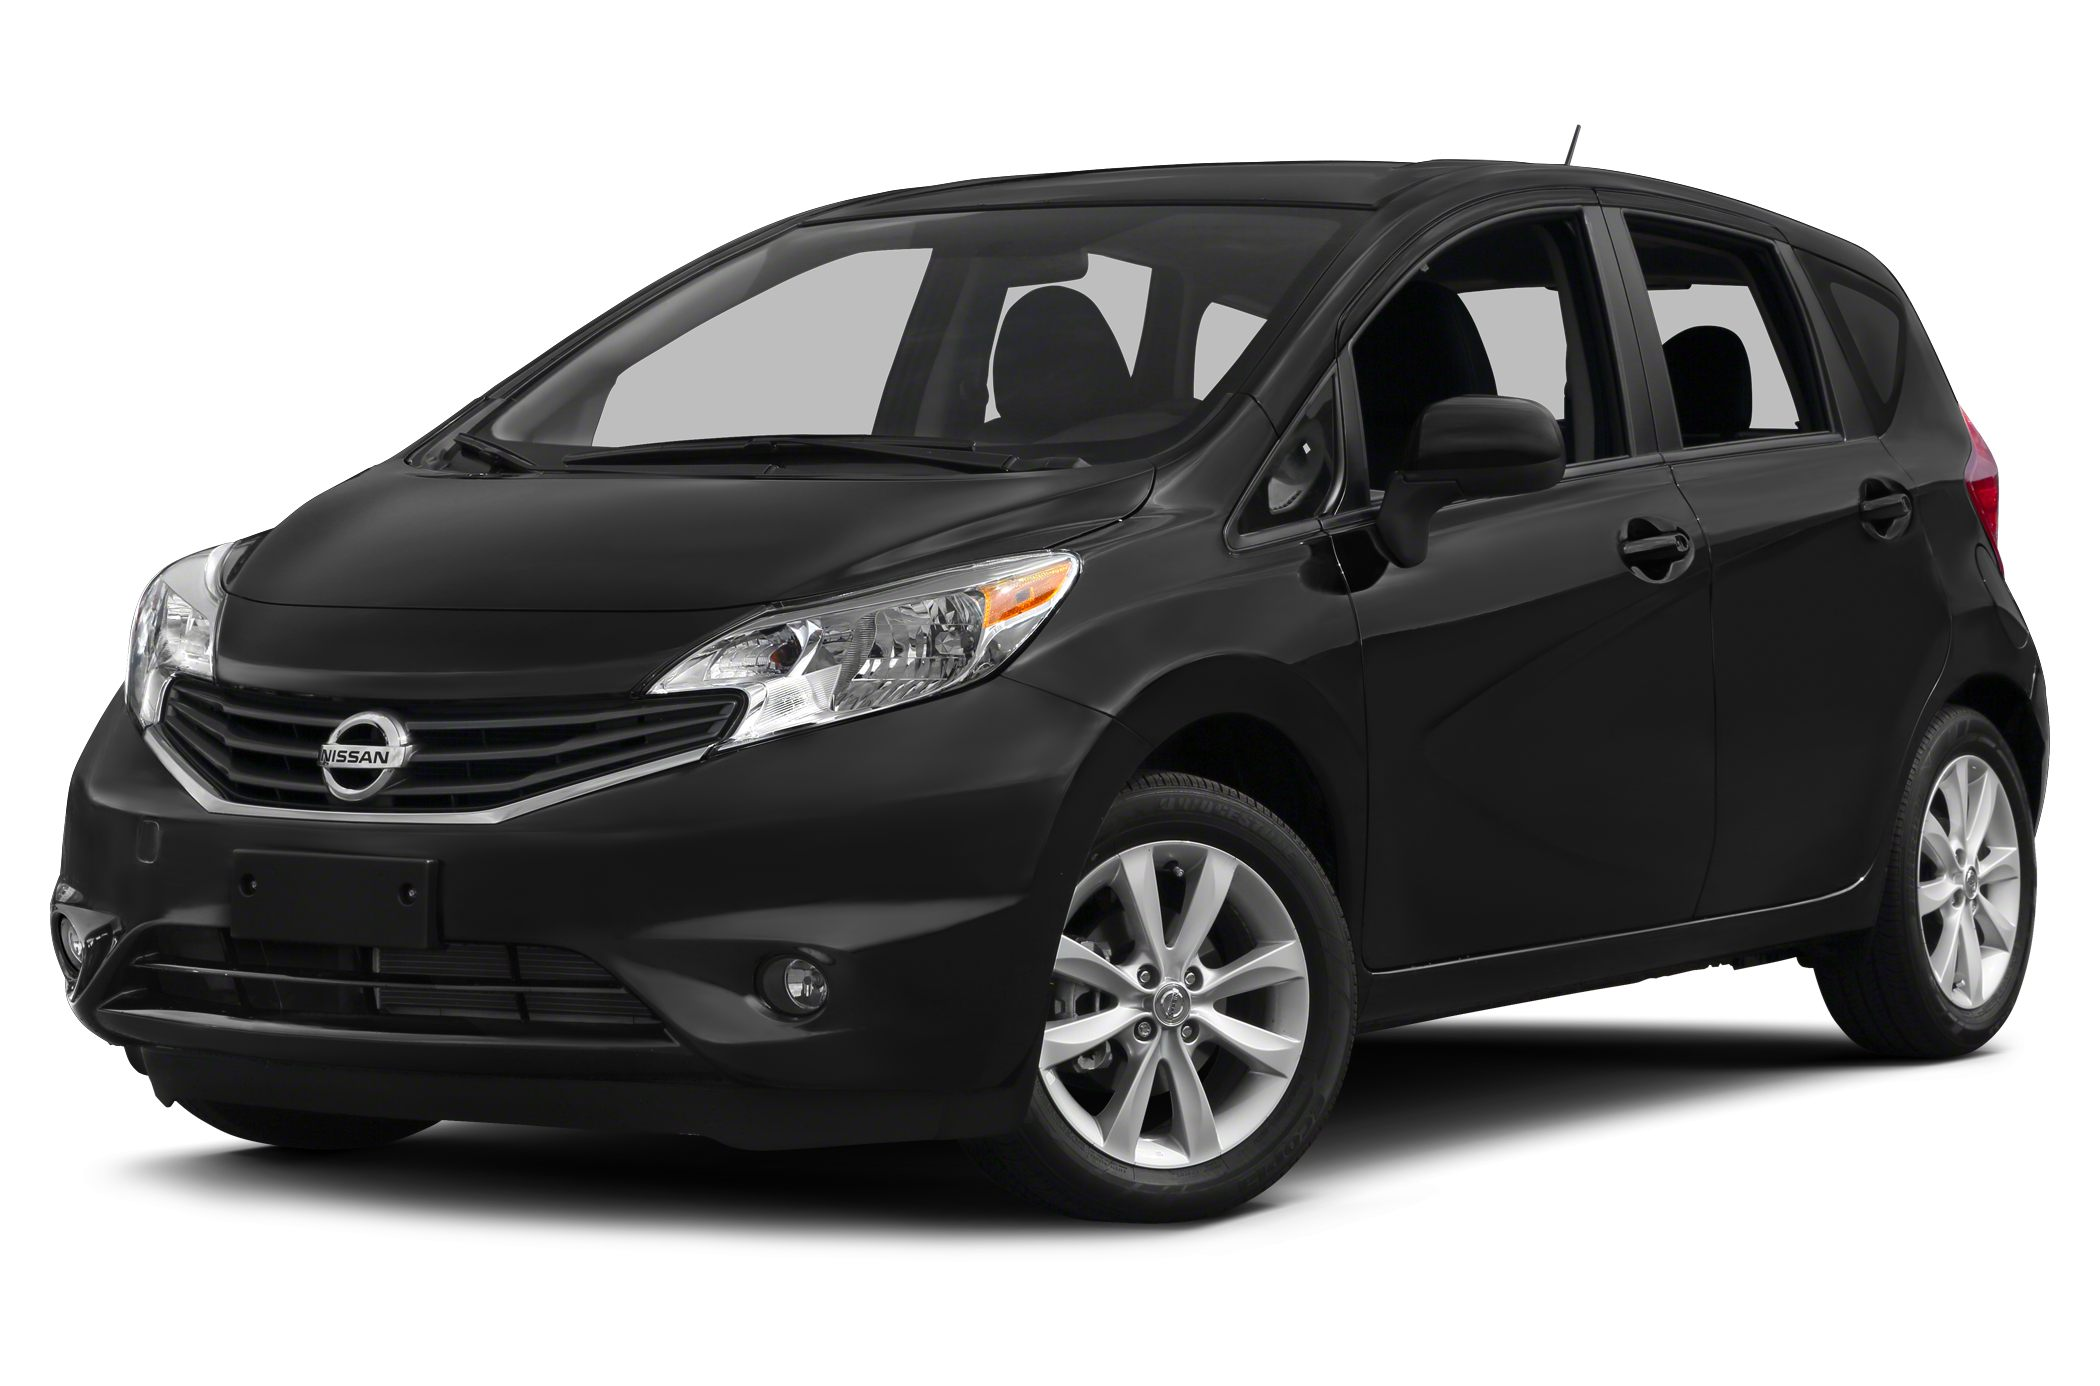 2015 Nissan Versa Note SV Hatchback for sale in Webster for $17,493 with 3,112 miles